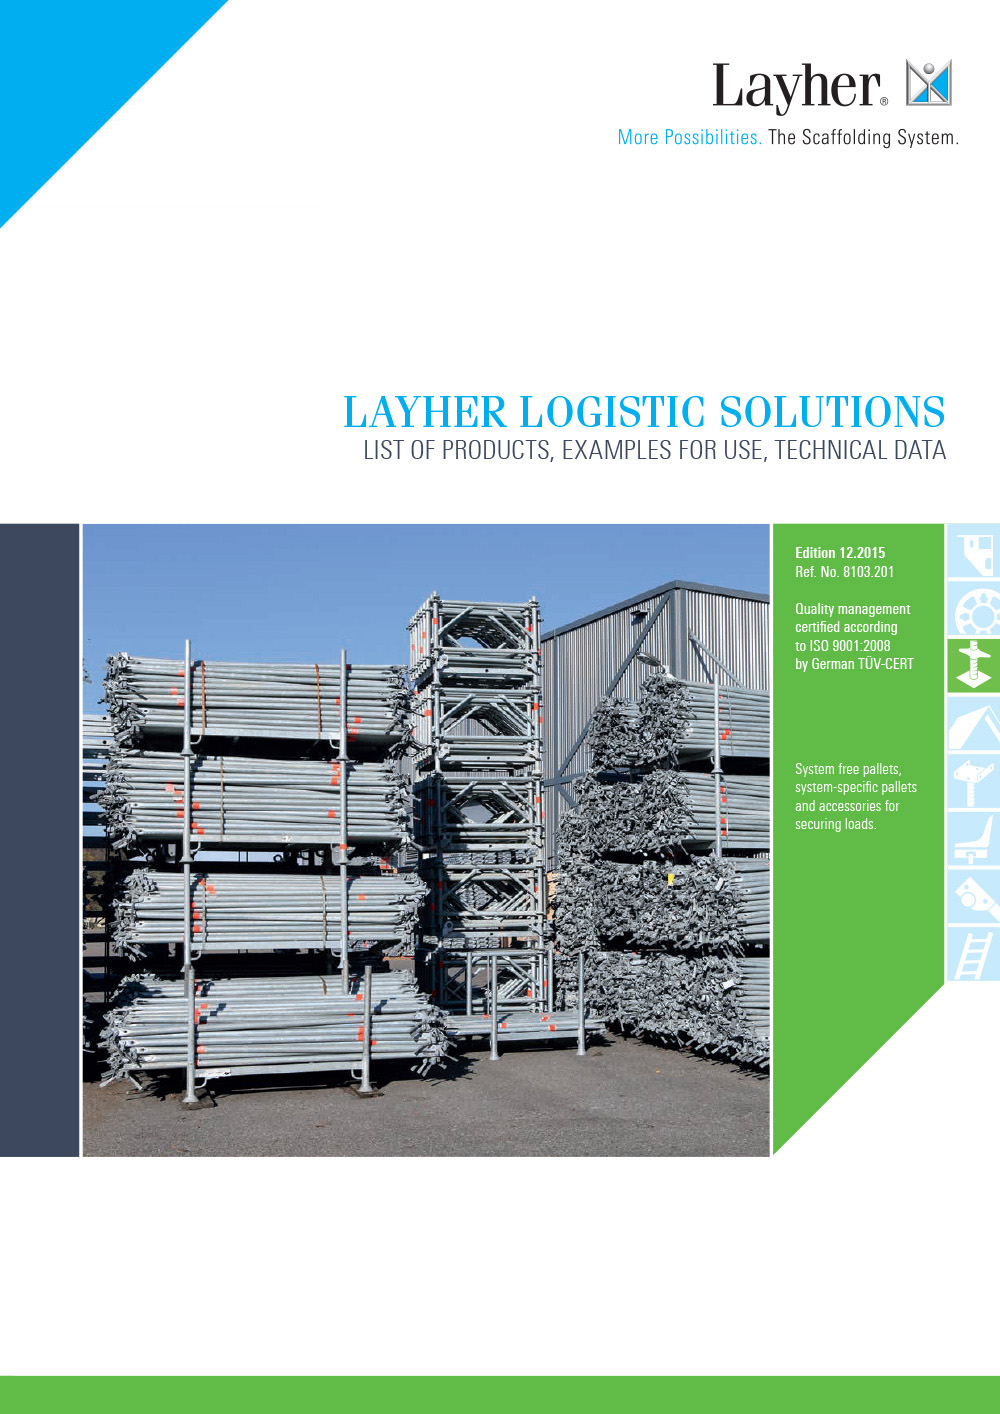 Layher Logistics Solutions